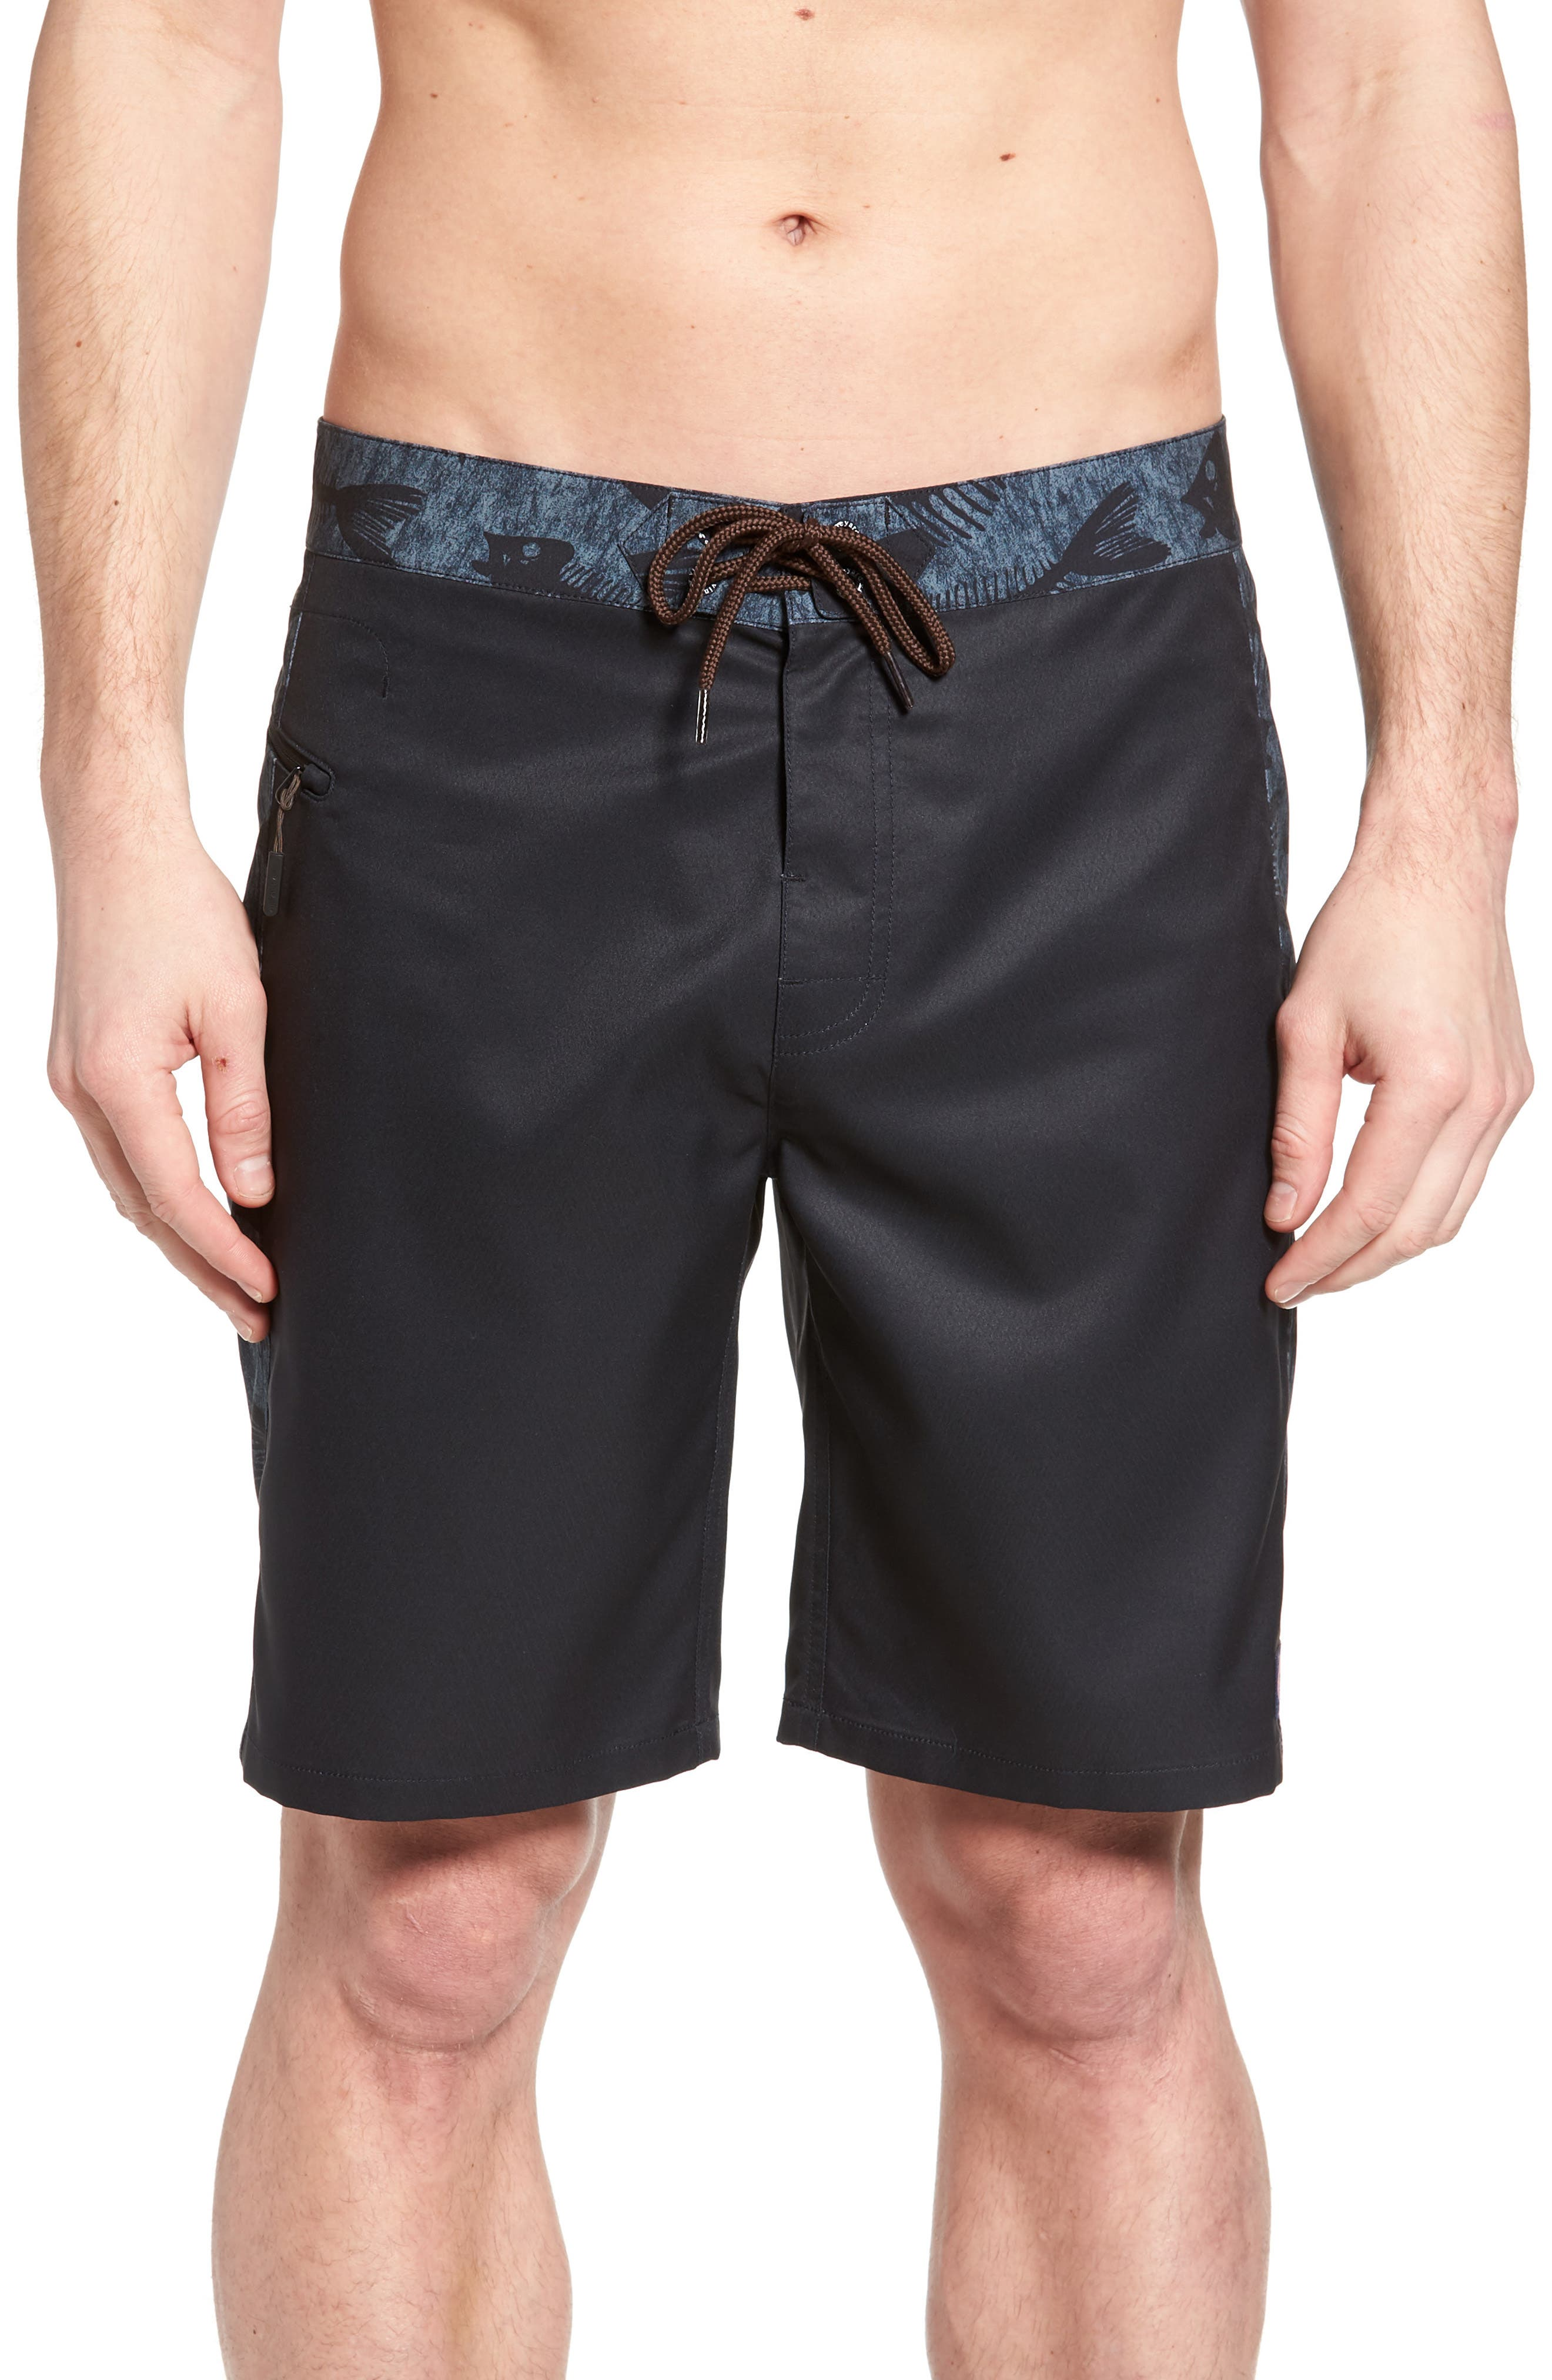 Bonefish Board Shorts,                         Main,                         color, Charcoal Grey